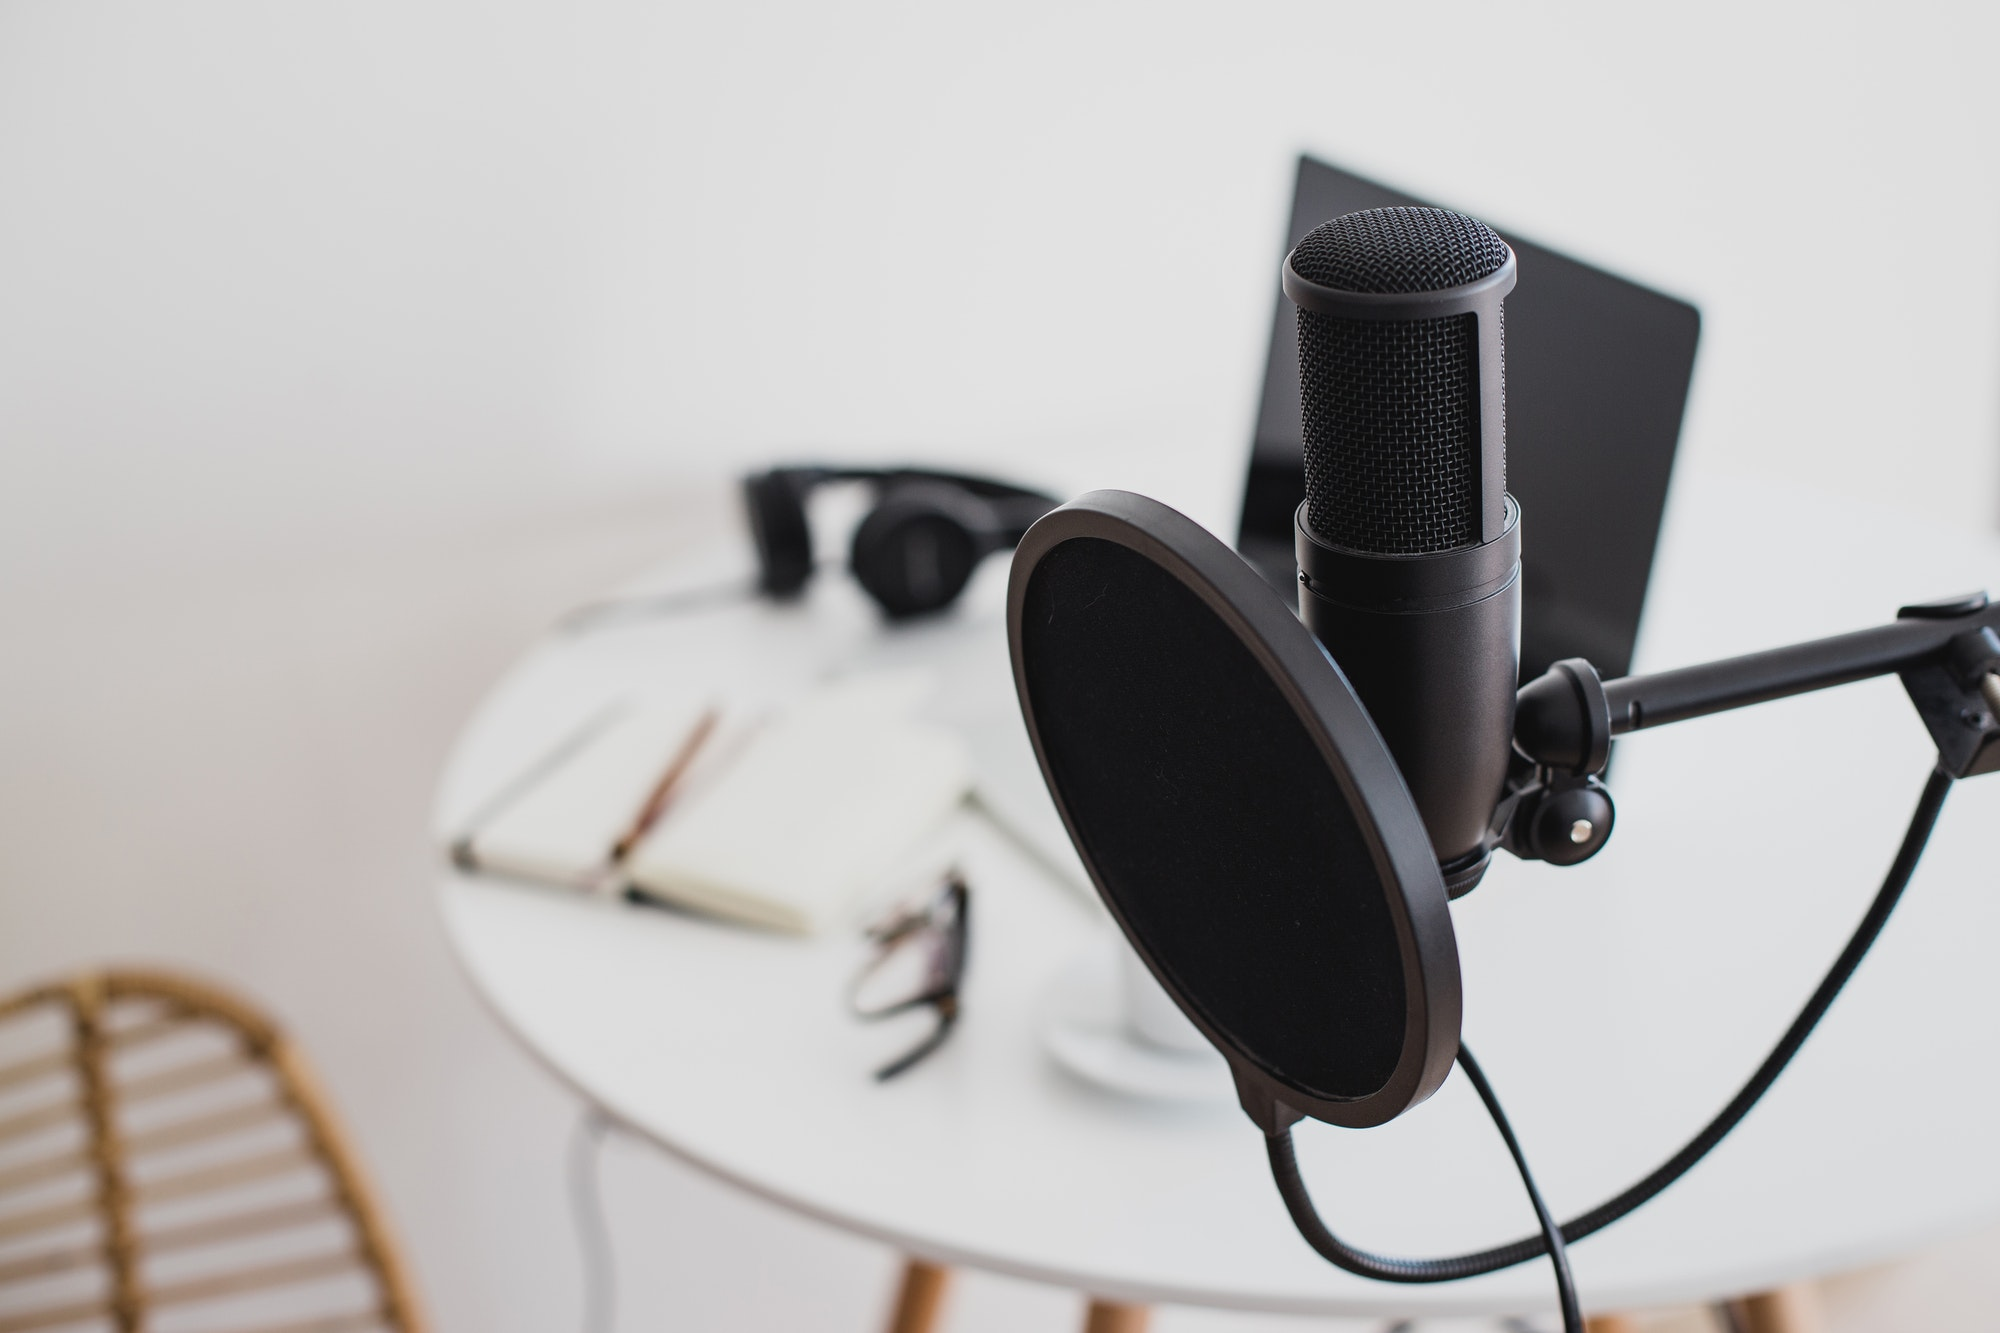 Items for recording online podcast: studio microphone, laptop and earphones.